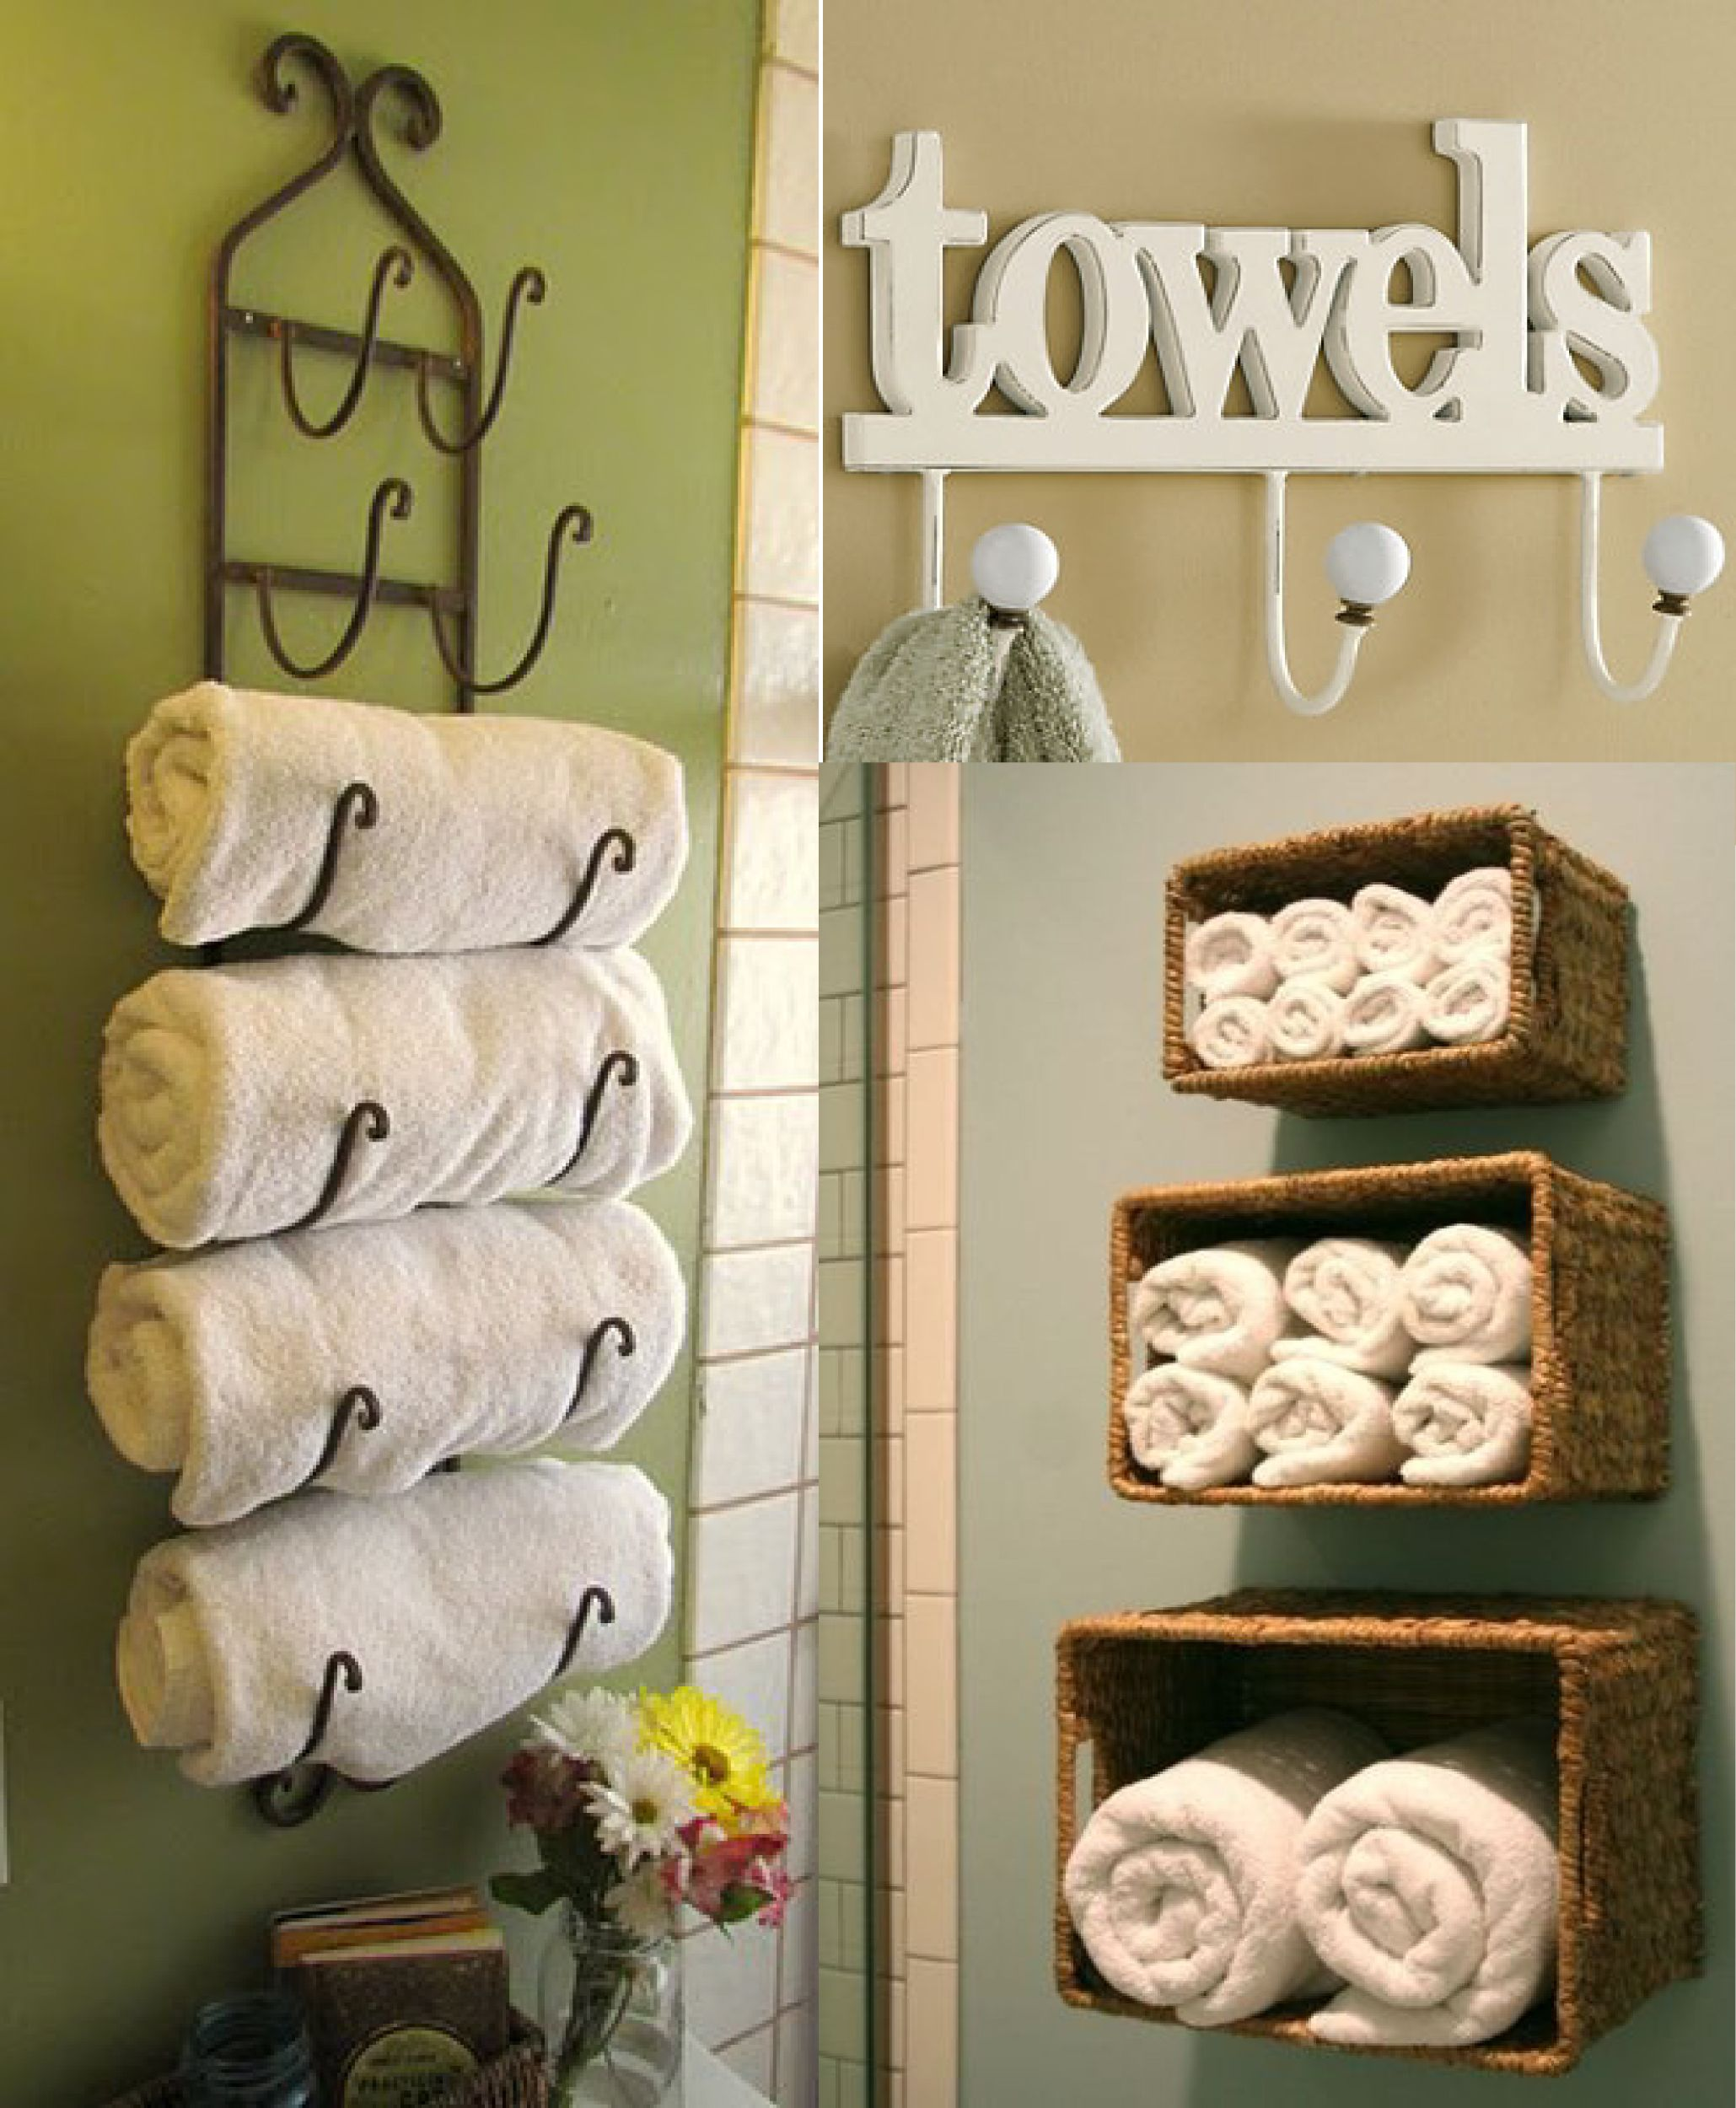 ... Towel Storage And Antique Custom Towel Bar Inspiring Bathroom  Accesories Design Ideas Fancy Towel Storage In Styles And Designs For  Elegant Bathroom